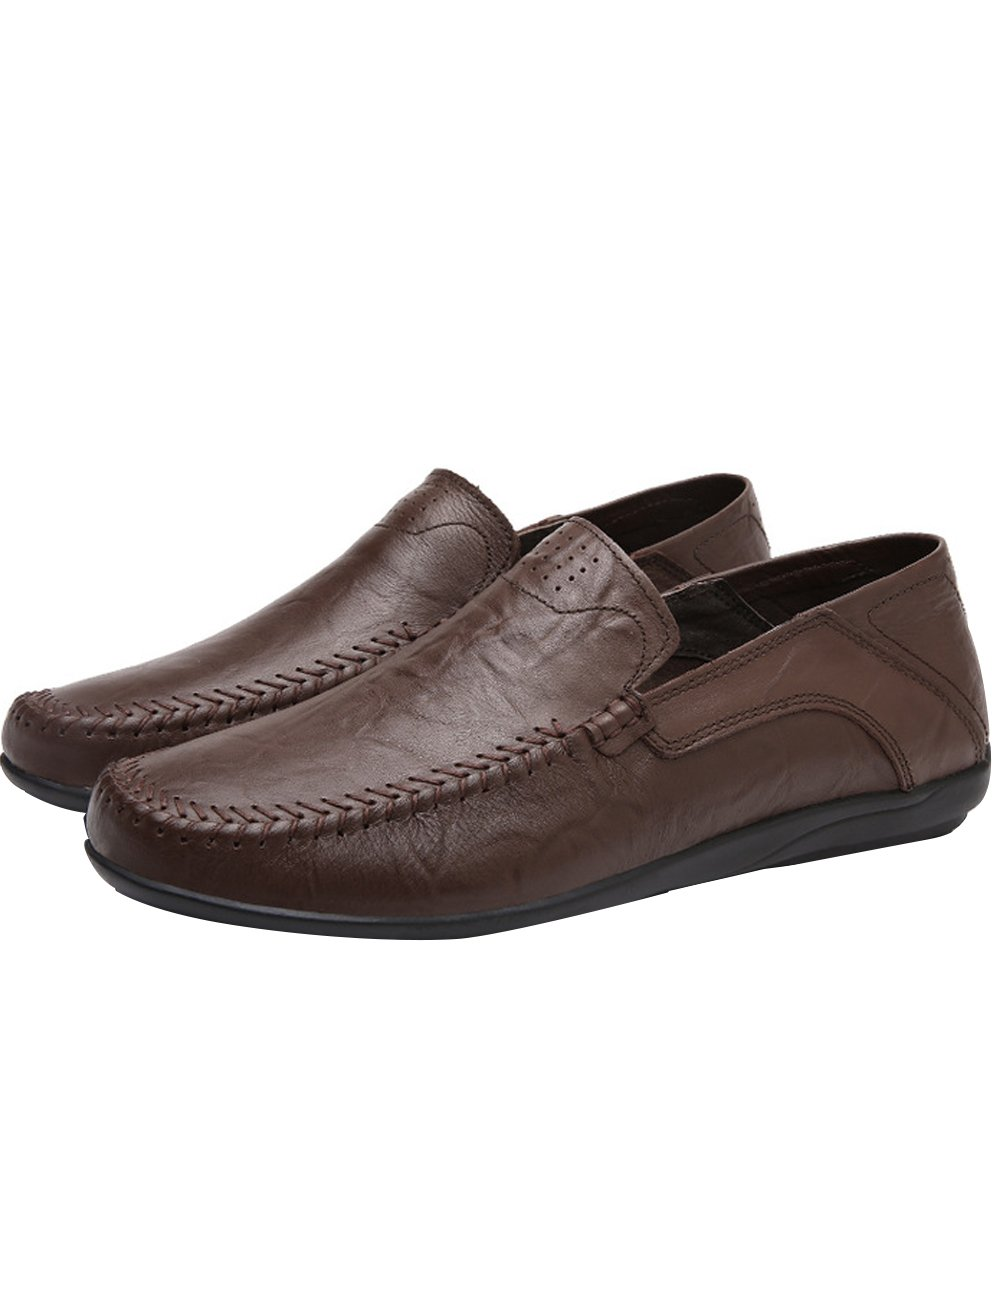 Menschwear Men's Genuine Leather Casual Loafers Shoes Slip-On Skate Shoes 13 M US|Dark-brown-tx8008